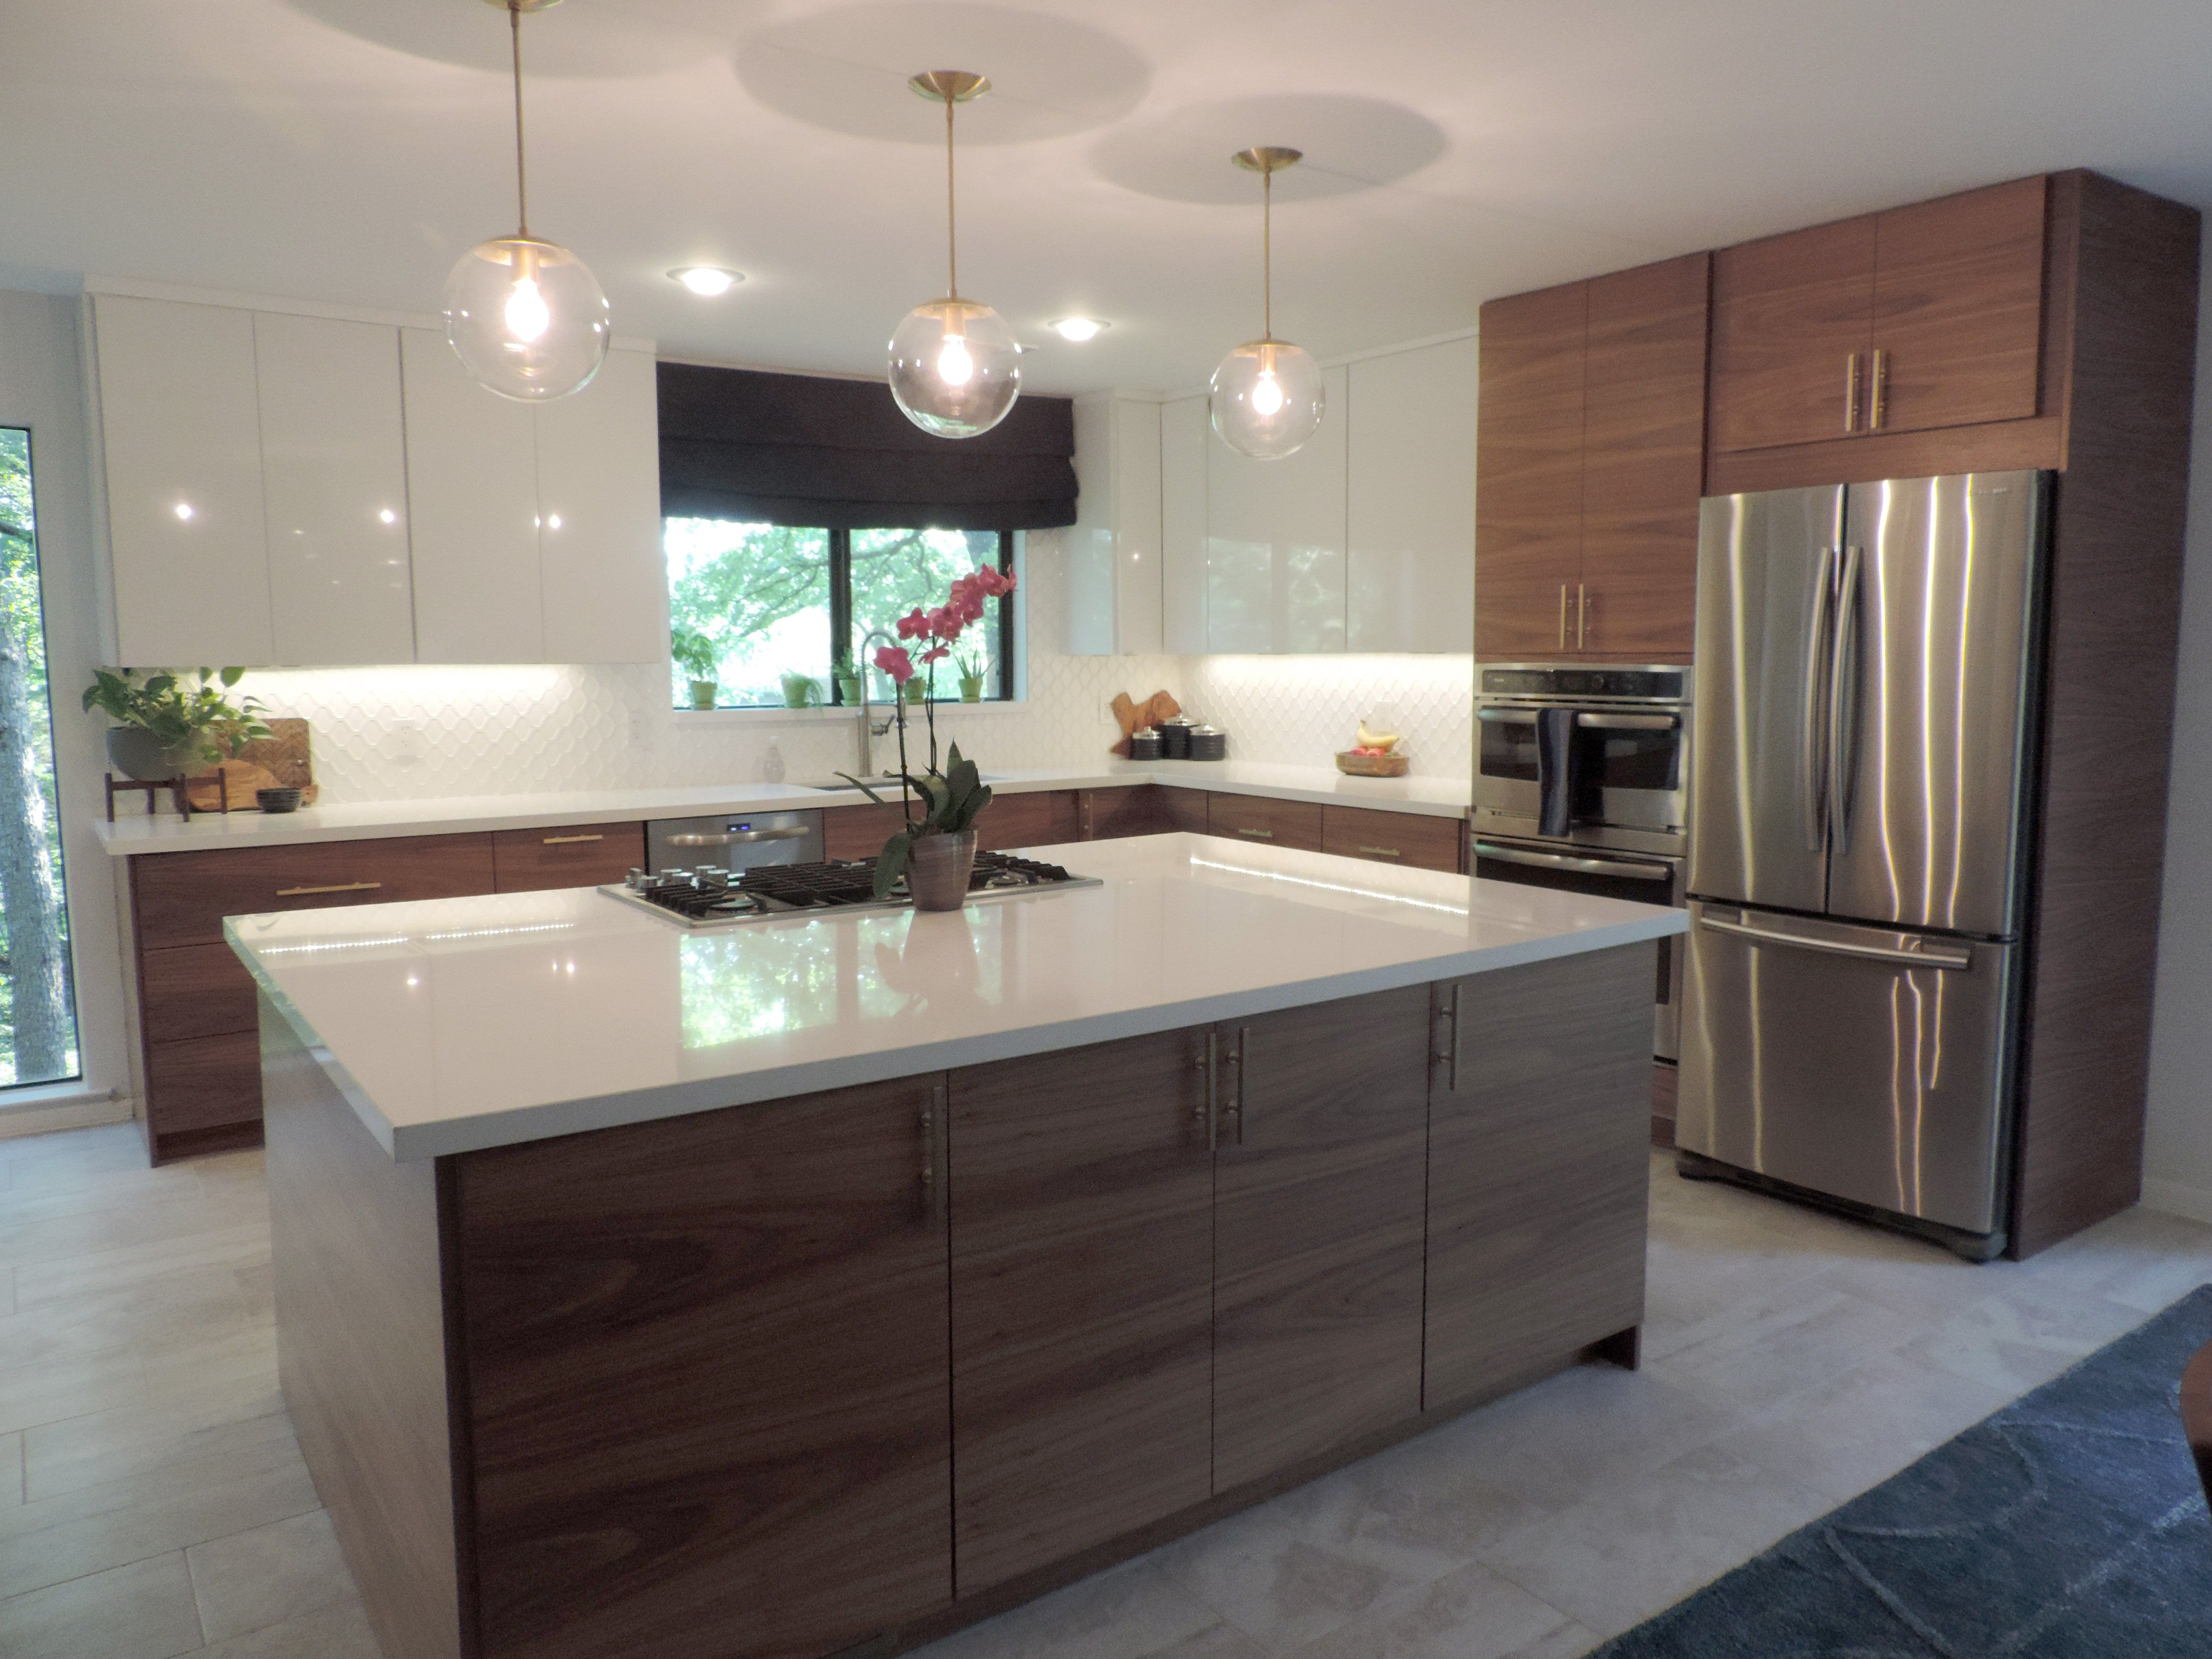 ikea kitchens cabinets small kitchen island with stools a mid century modern for gorgeous light